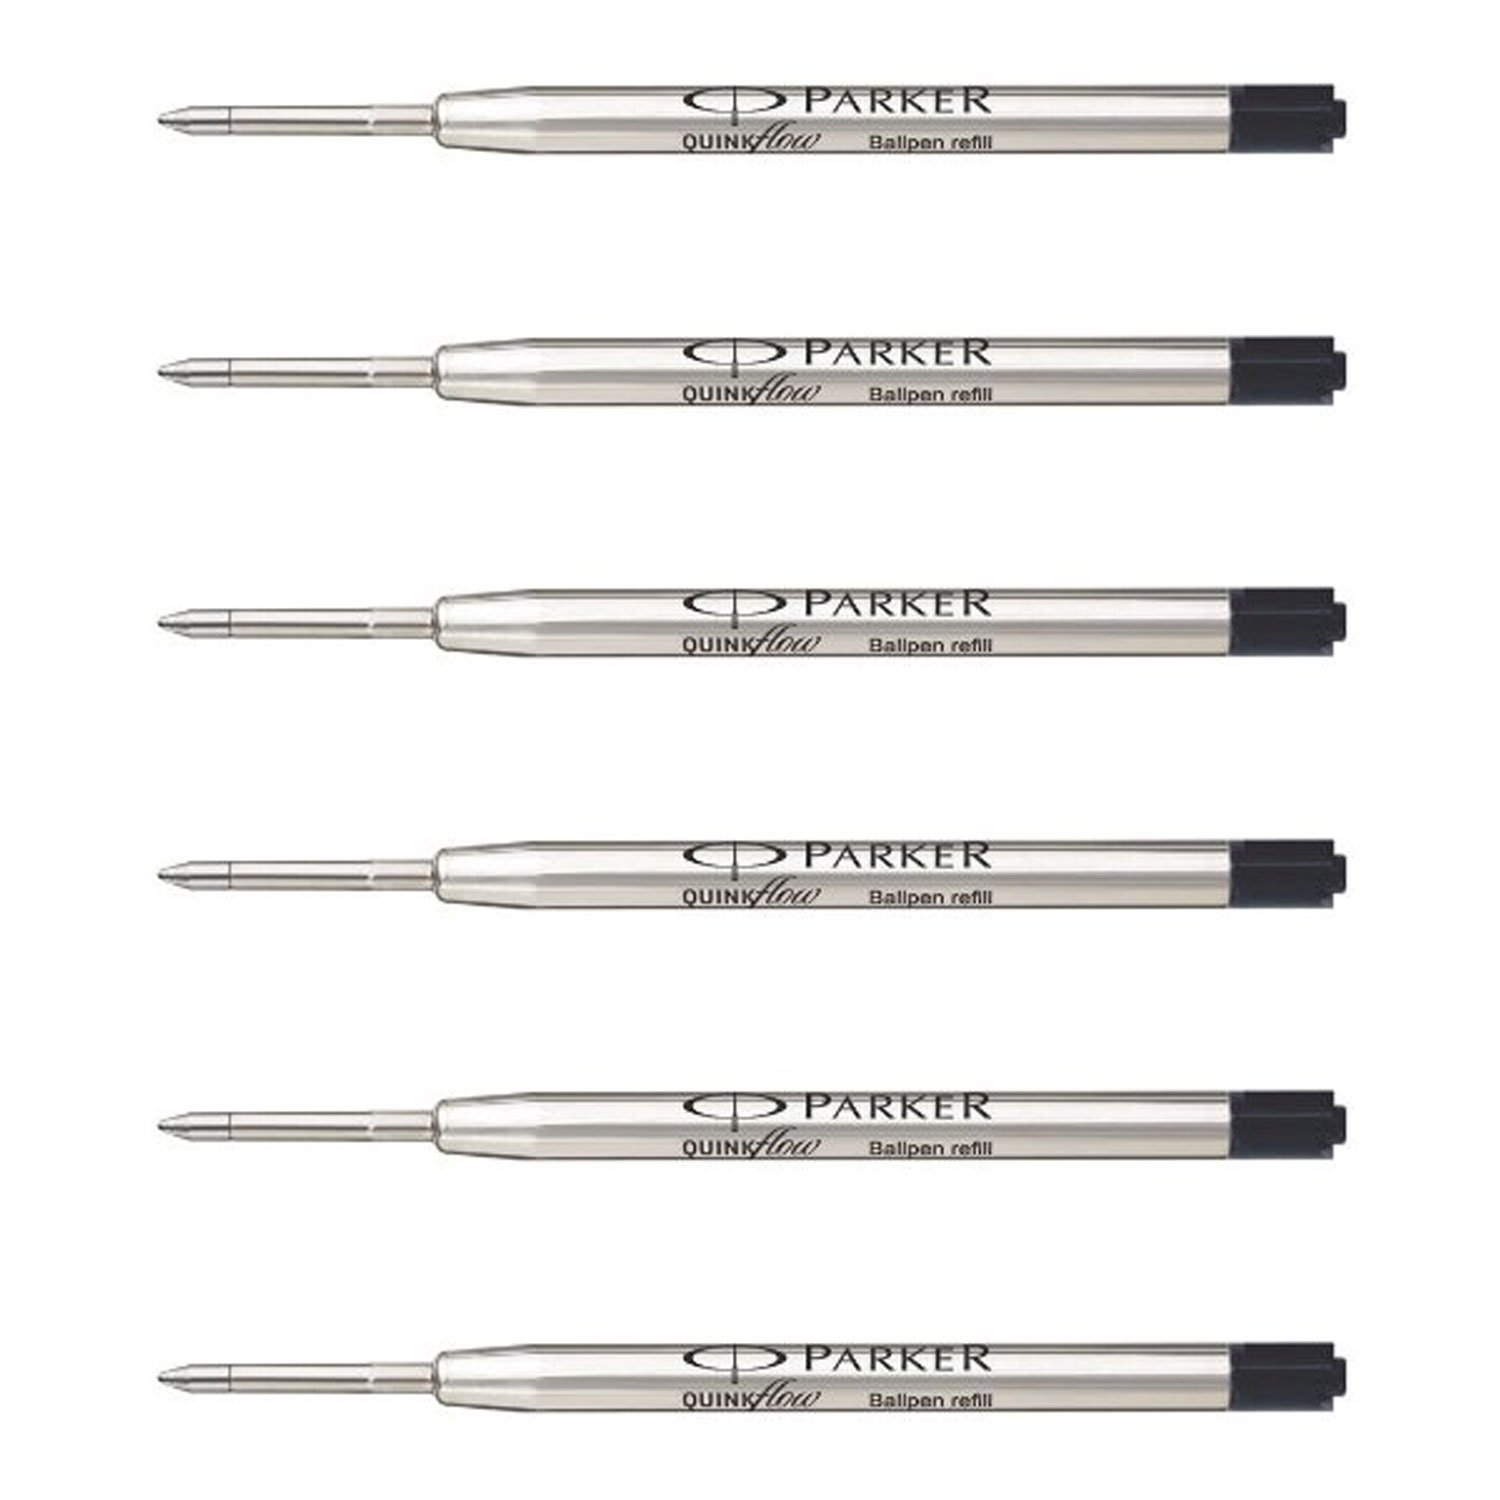 Parker QuinkFlow Ink Refill per penne a sfera, Media Point, nero Ricariche (1782469) da Parker Mitsubishi Pencil Co. O124803